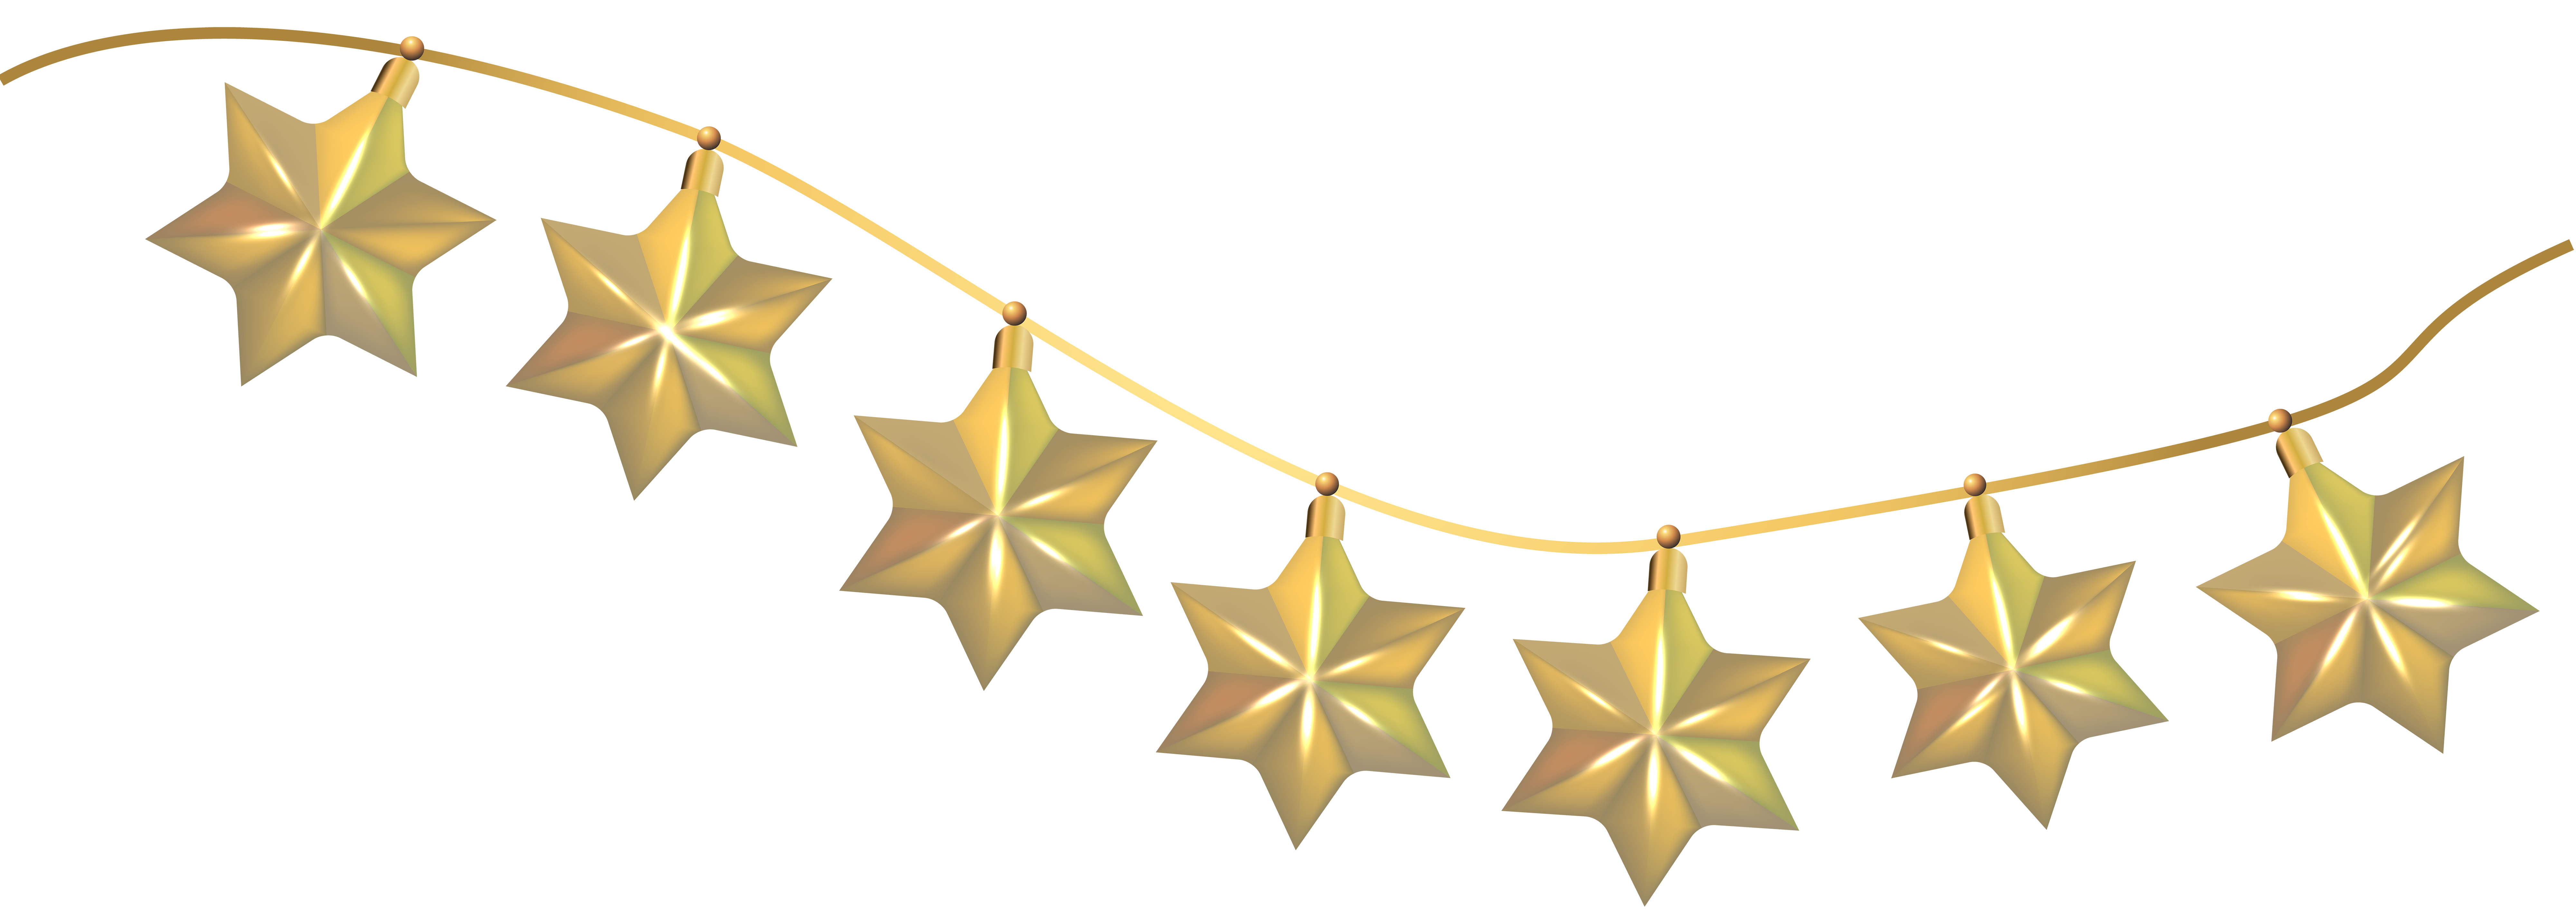 Hanging star clipart free download Santa Claus Christmas gift Clip art - Hanging Stars Decoration PNG ... free download